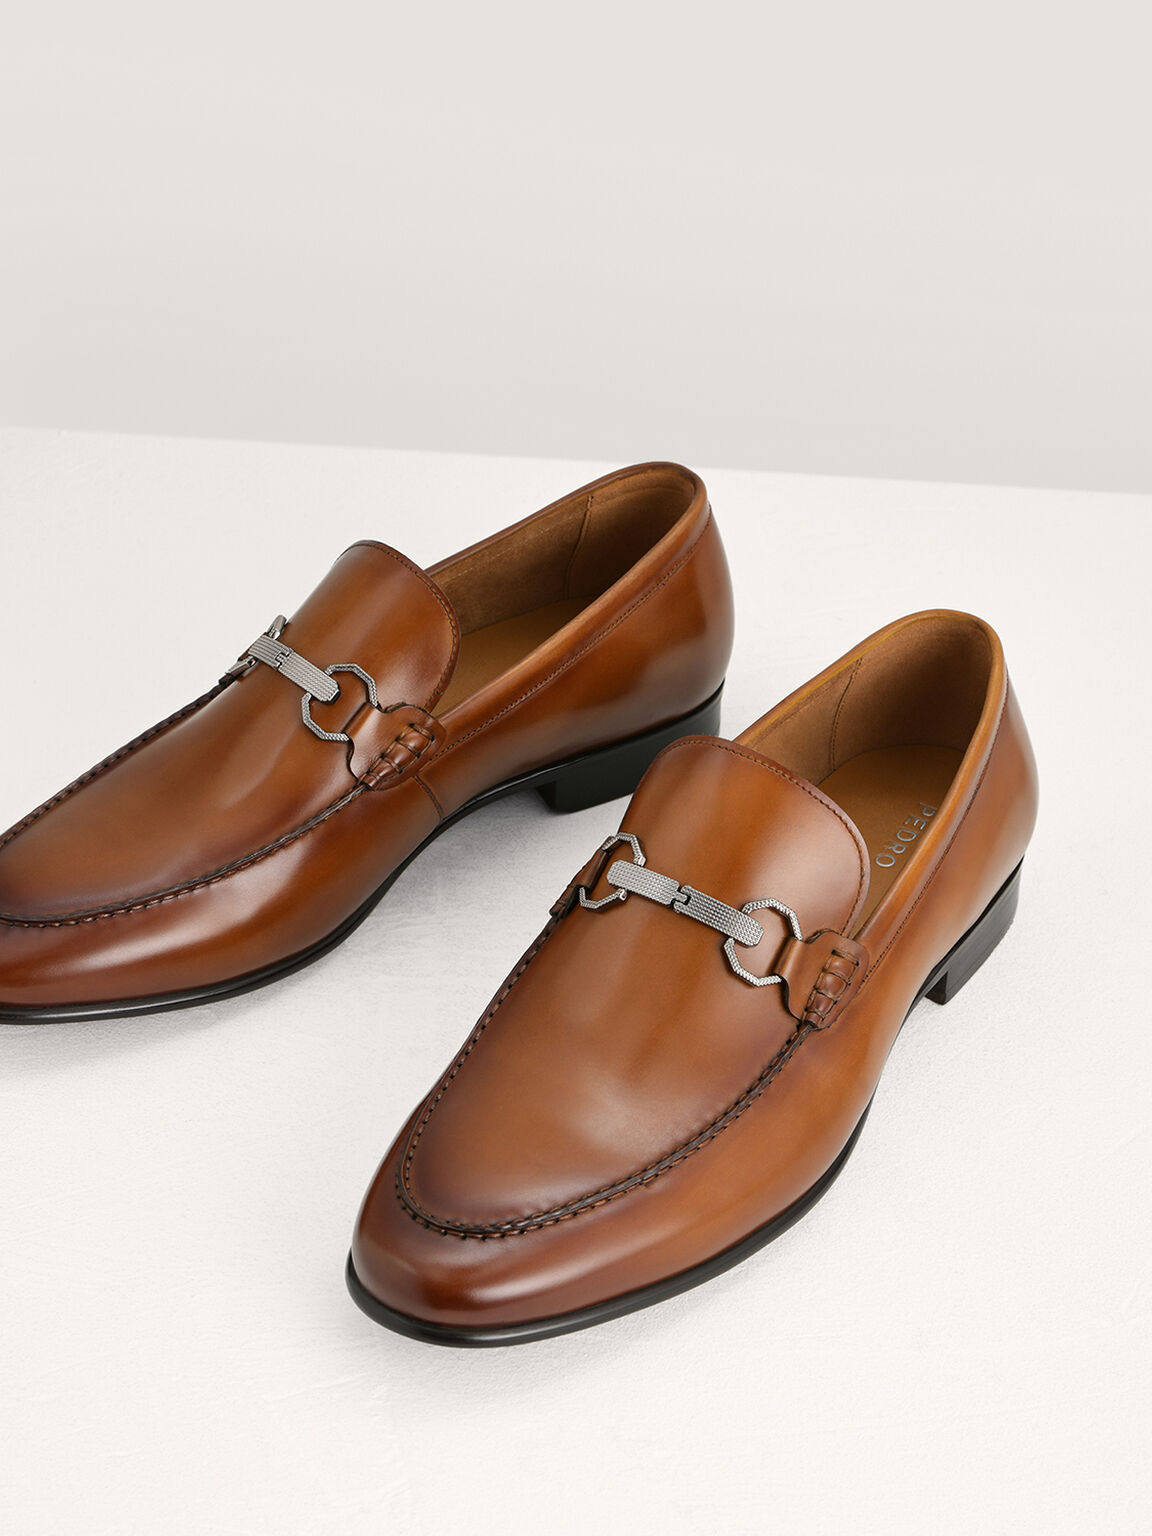 Buckle Leather Loafers, Cognac, hi-res